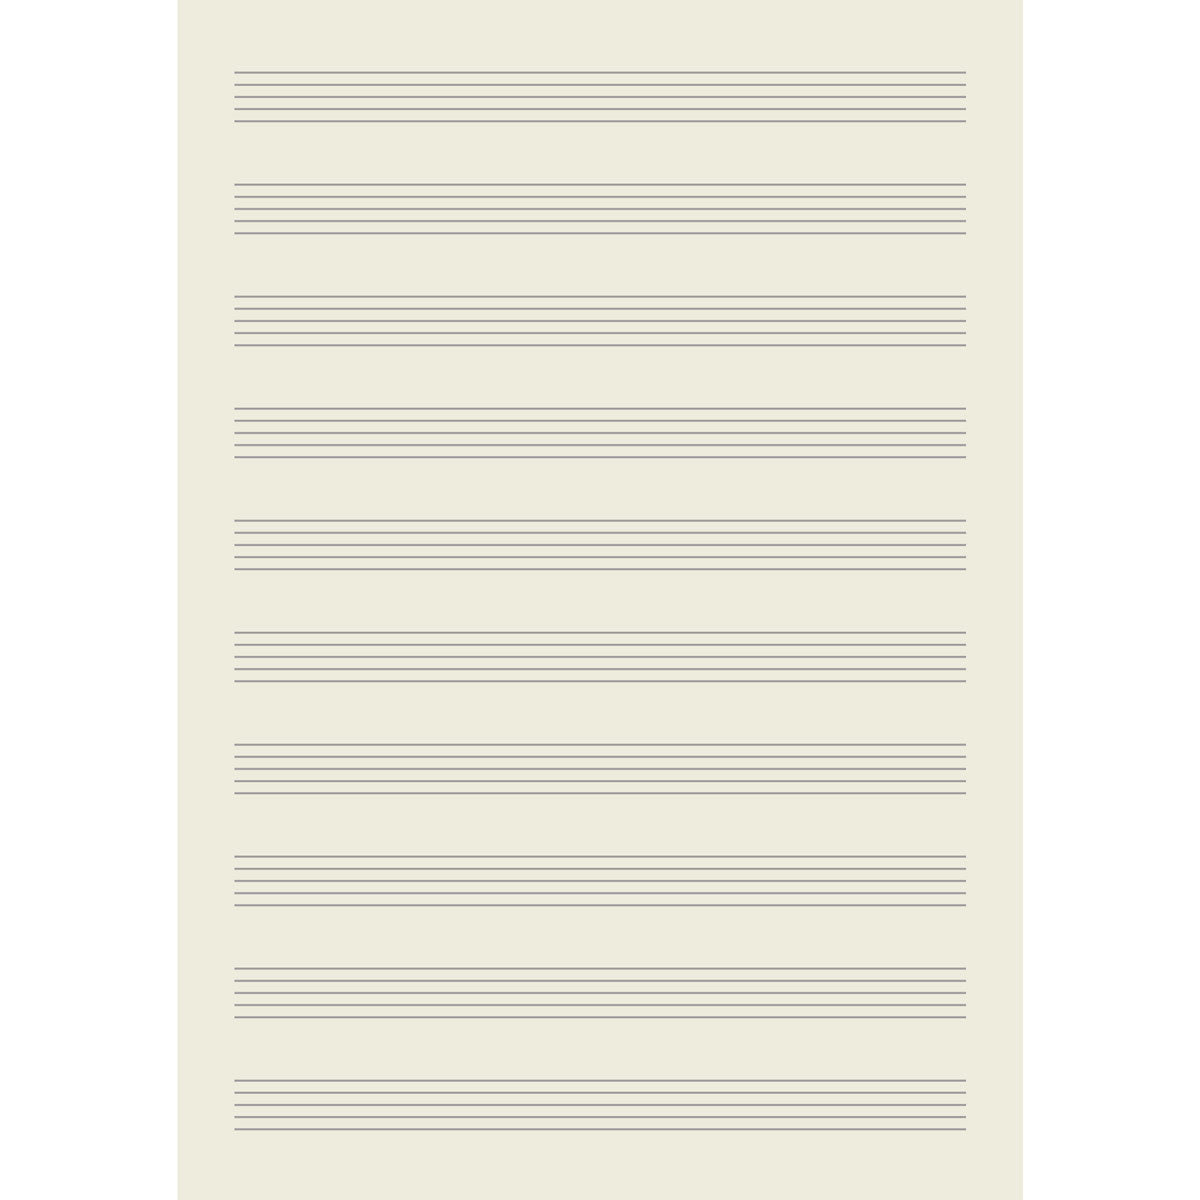 Leather Music Manuscript Notebook - Navy Blue